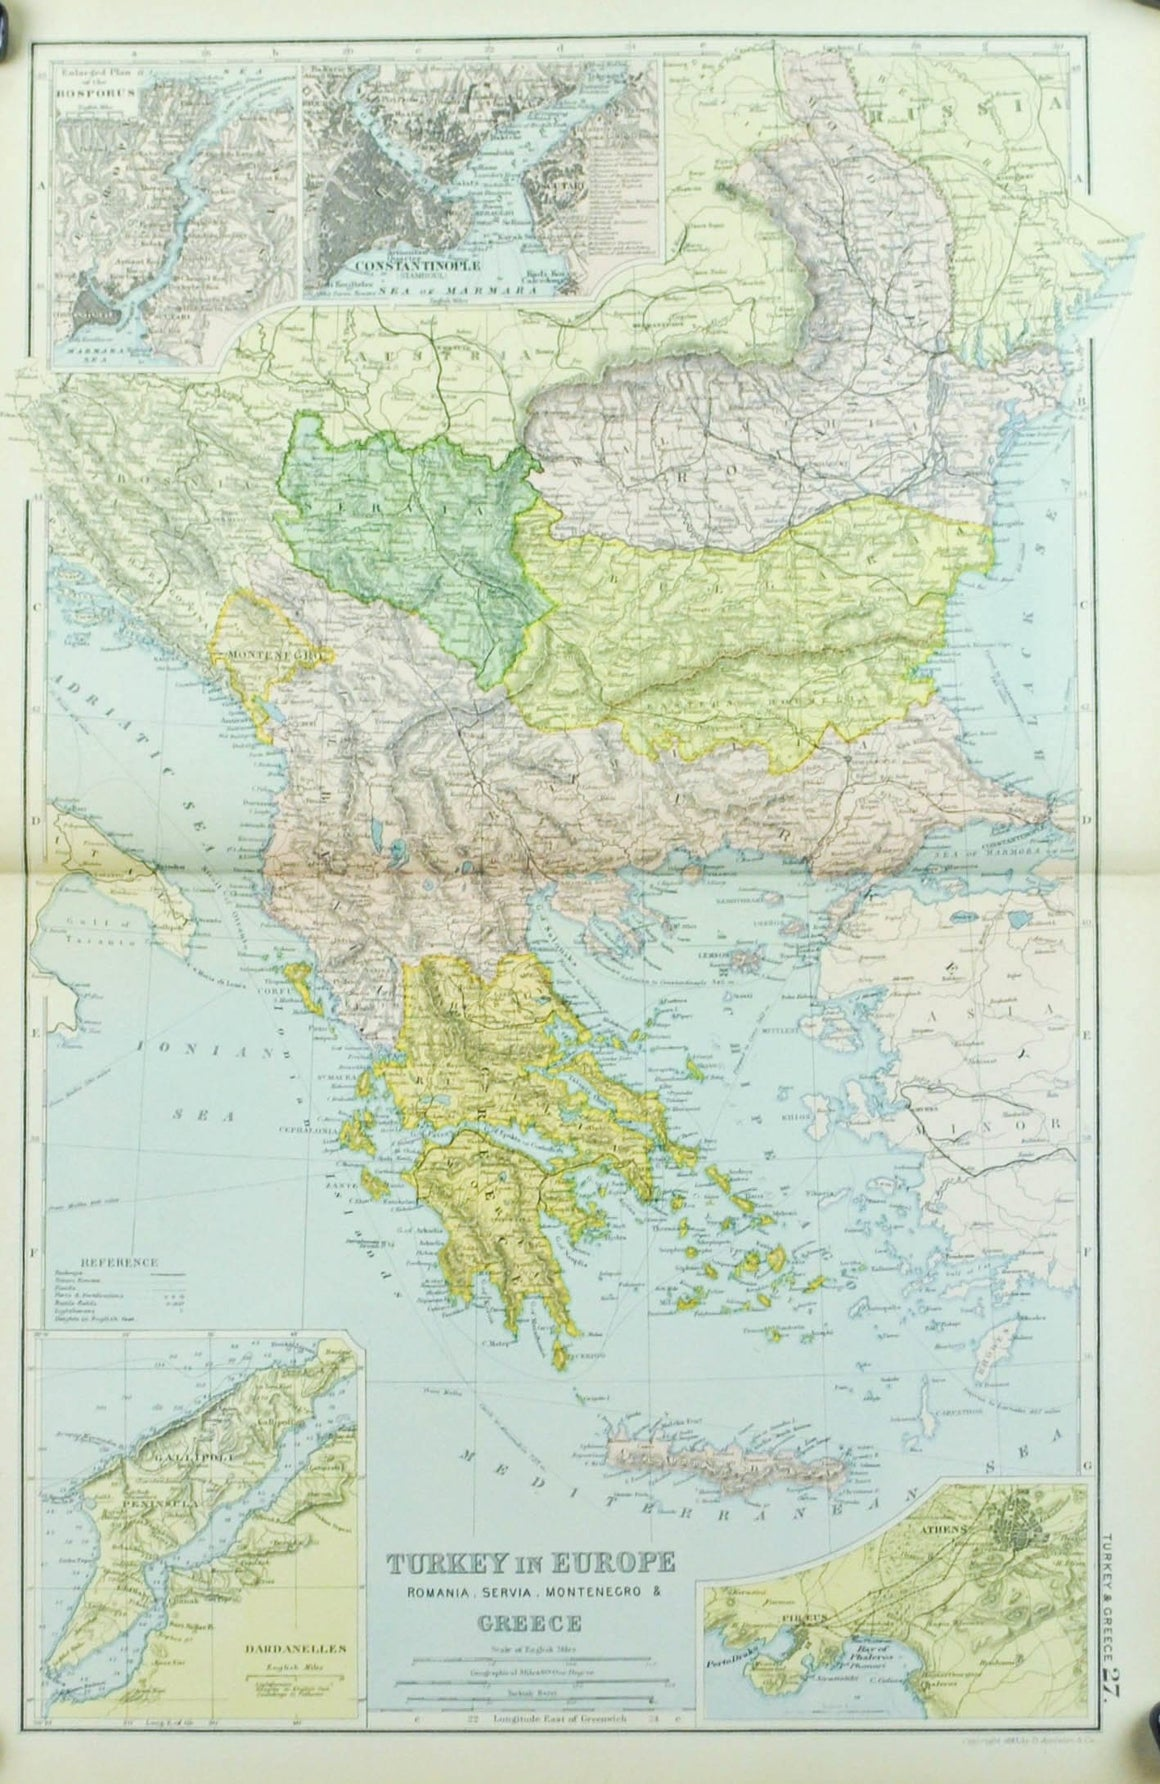 1891 Turkey in Europe